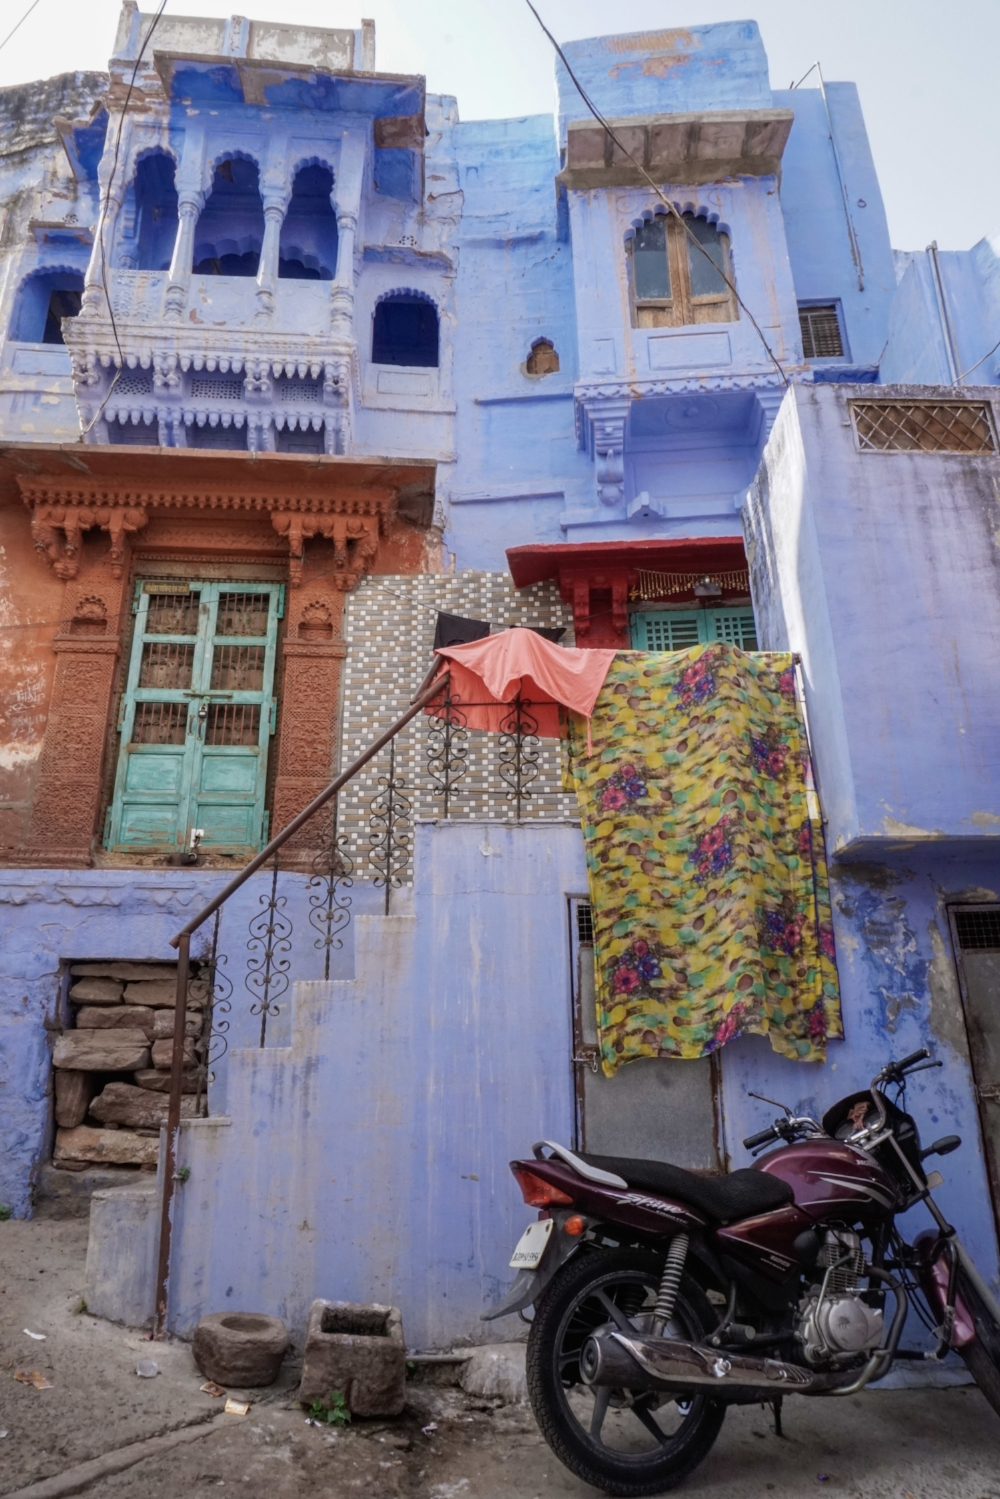 curio.trips.india.jodhpur.blue.city.scene.jpg